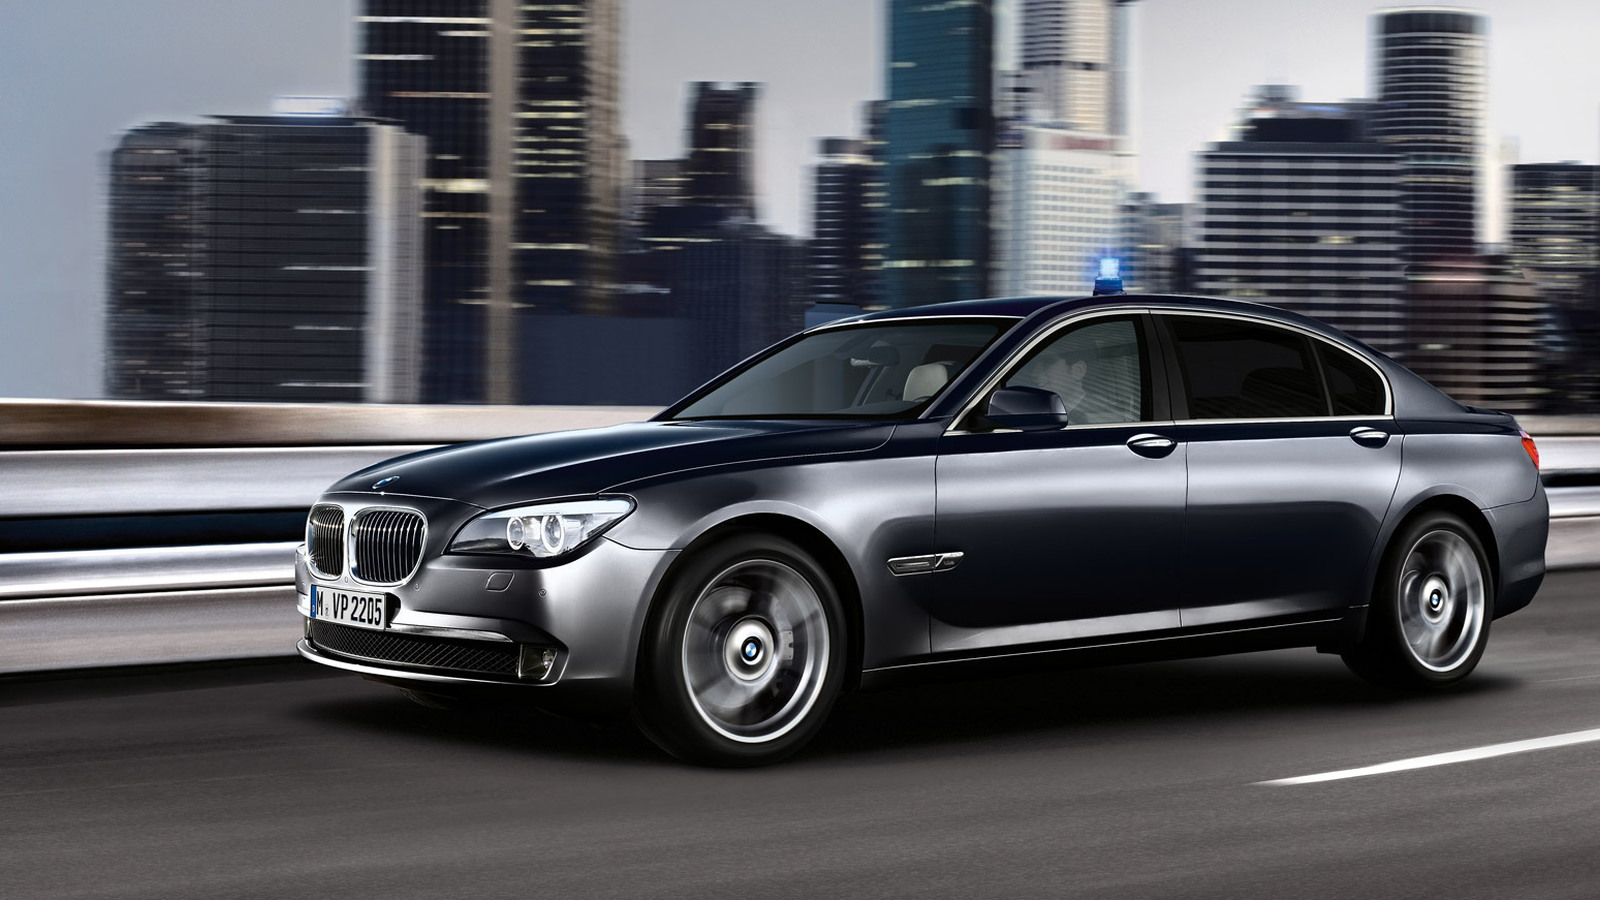 Bmw Adds 2010 7 Series High Security To Armored Fleet